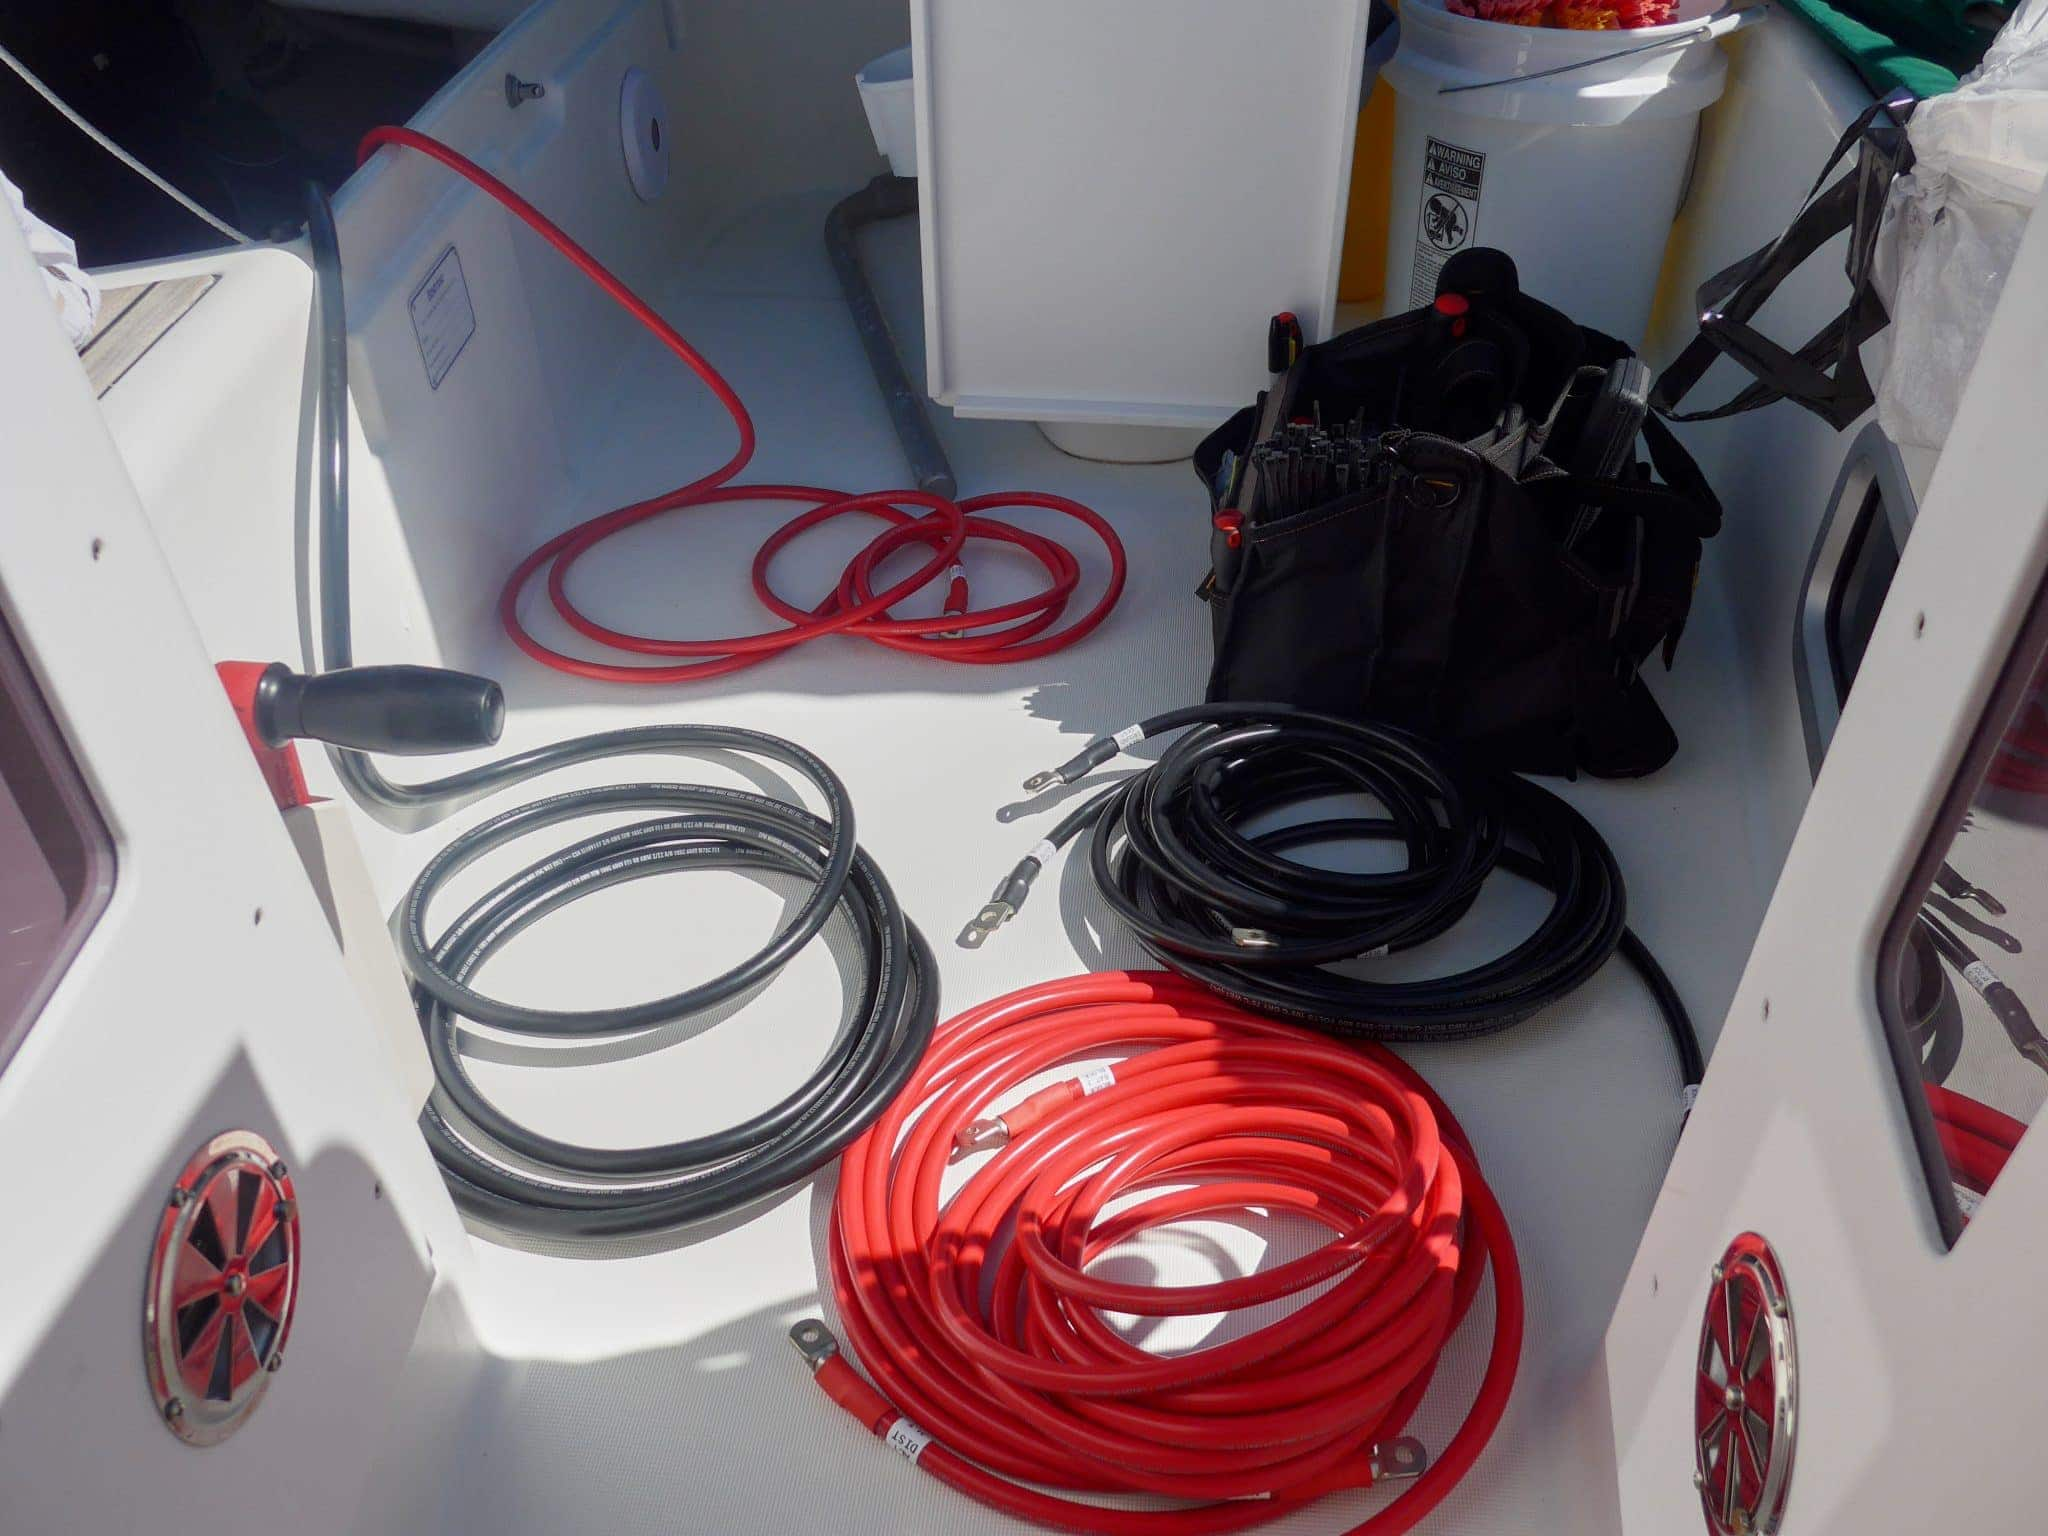 Staging wires in cockpit